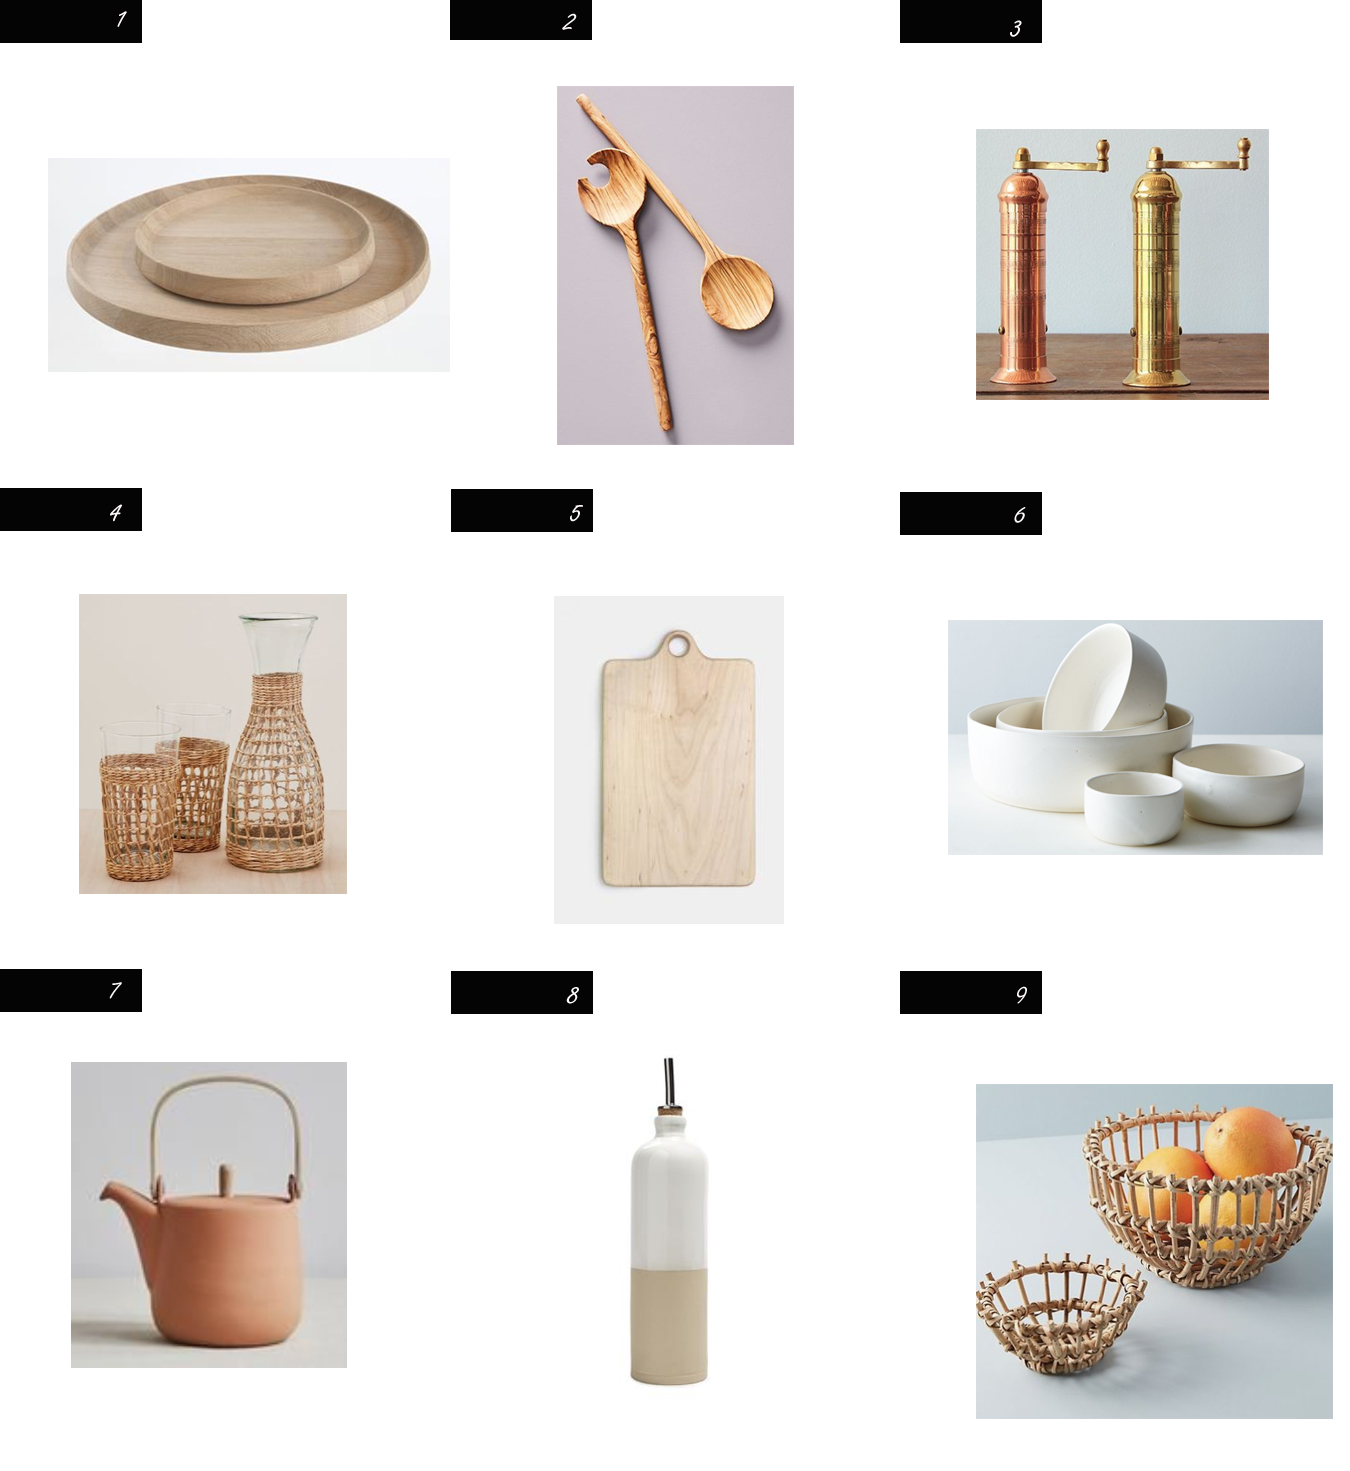 Modhemian kitchen accessories, modern kitchen styling